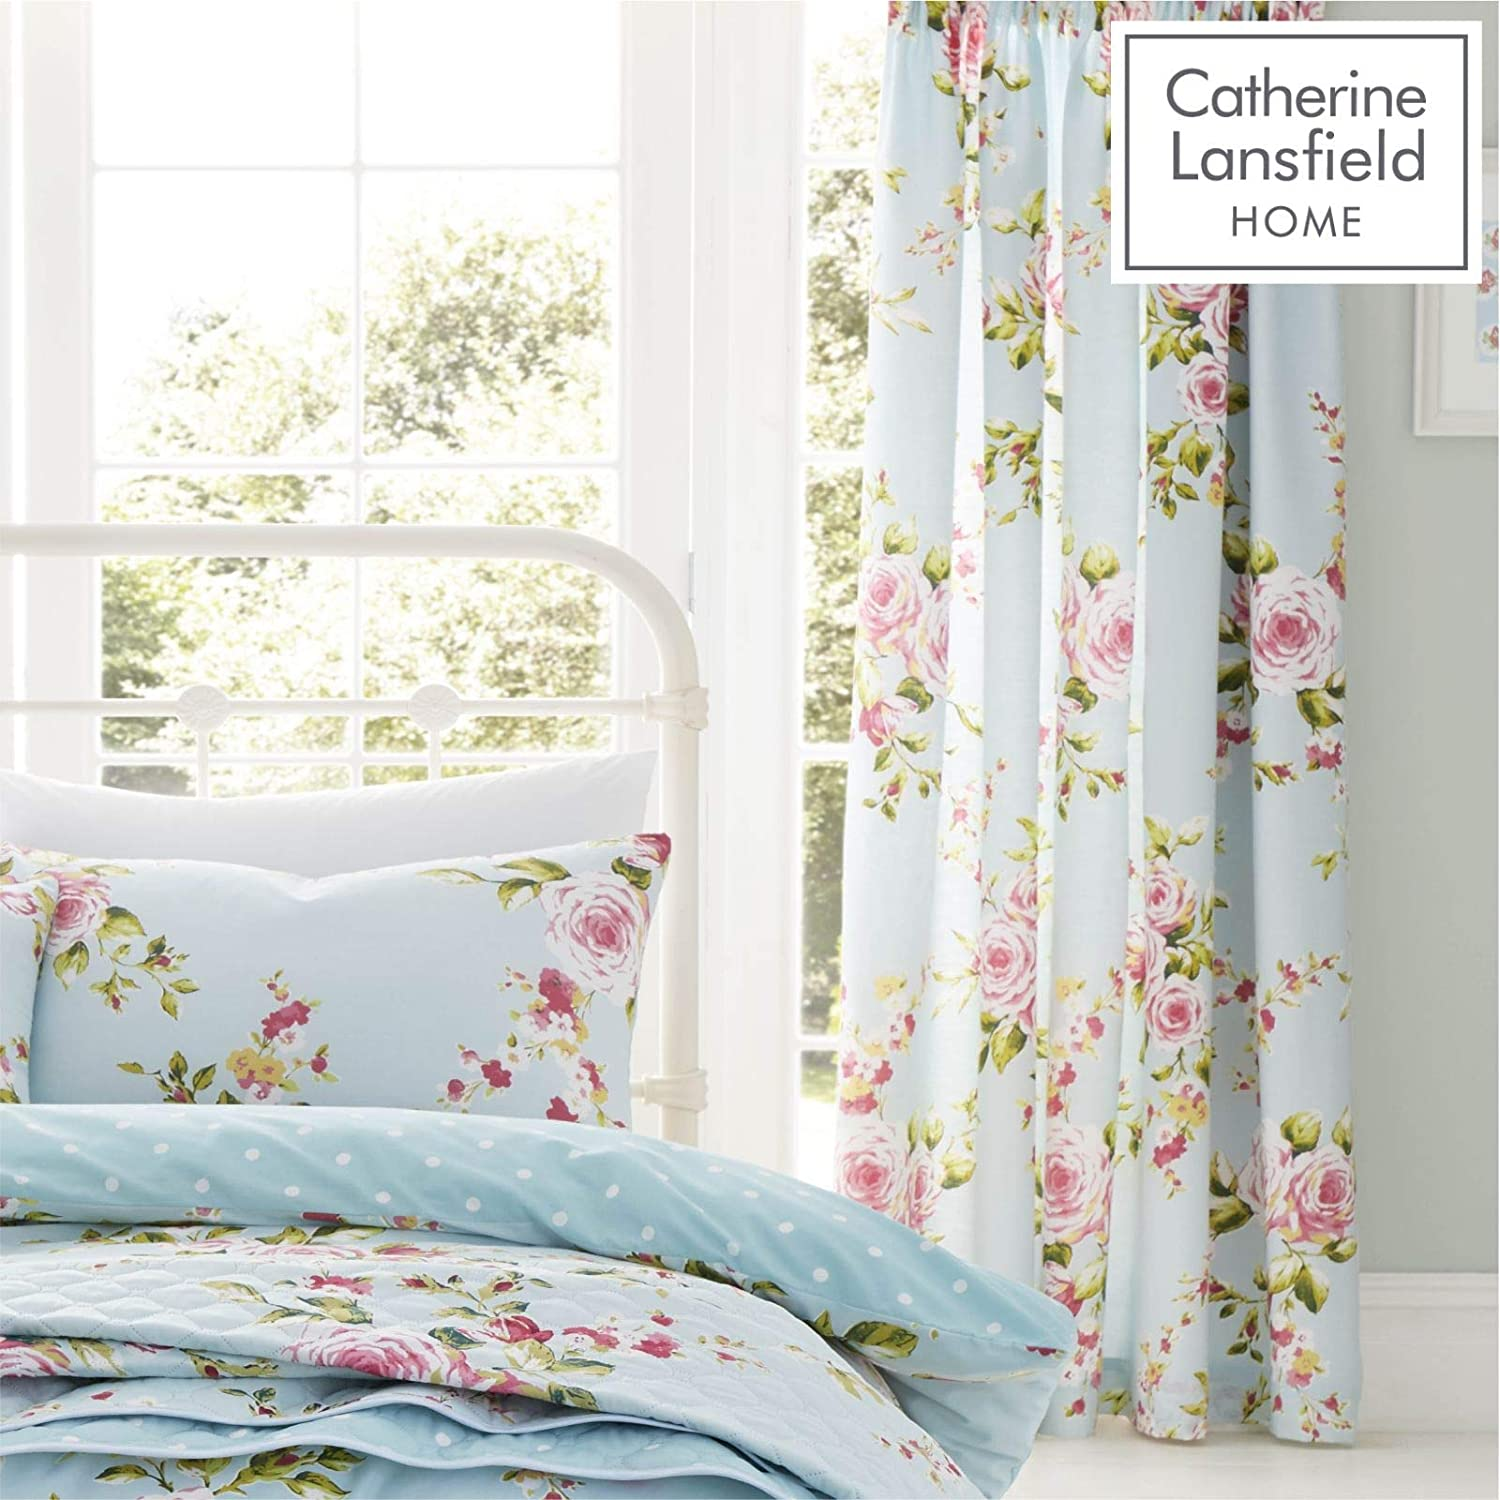 Catherine Lansfield Couvre-lit Canterbury 240/x/260/cm.